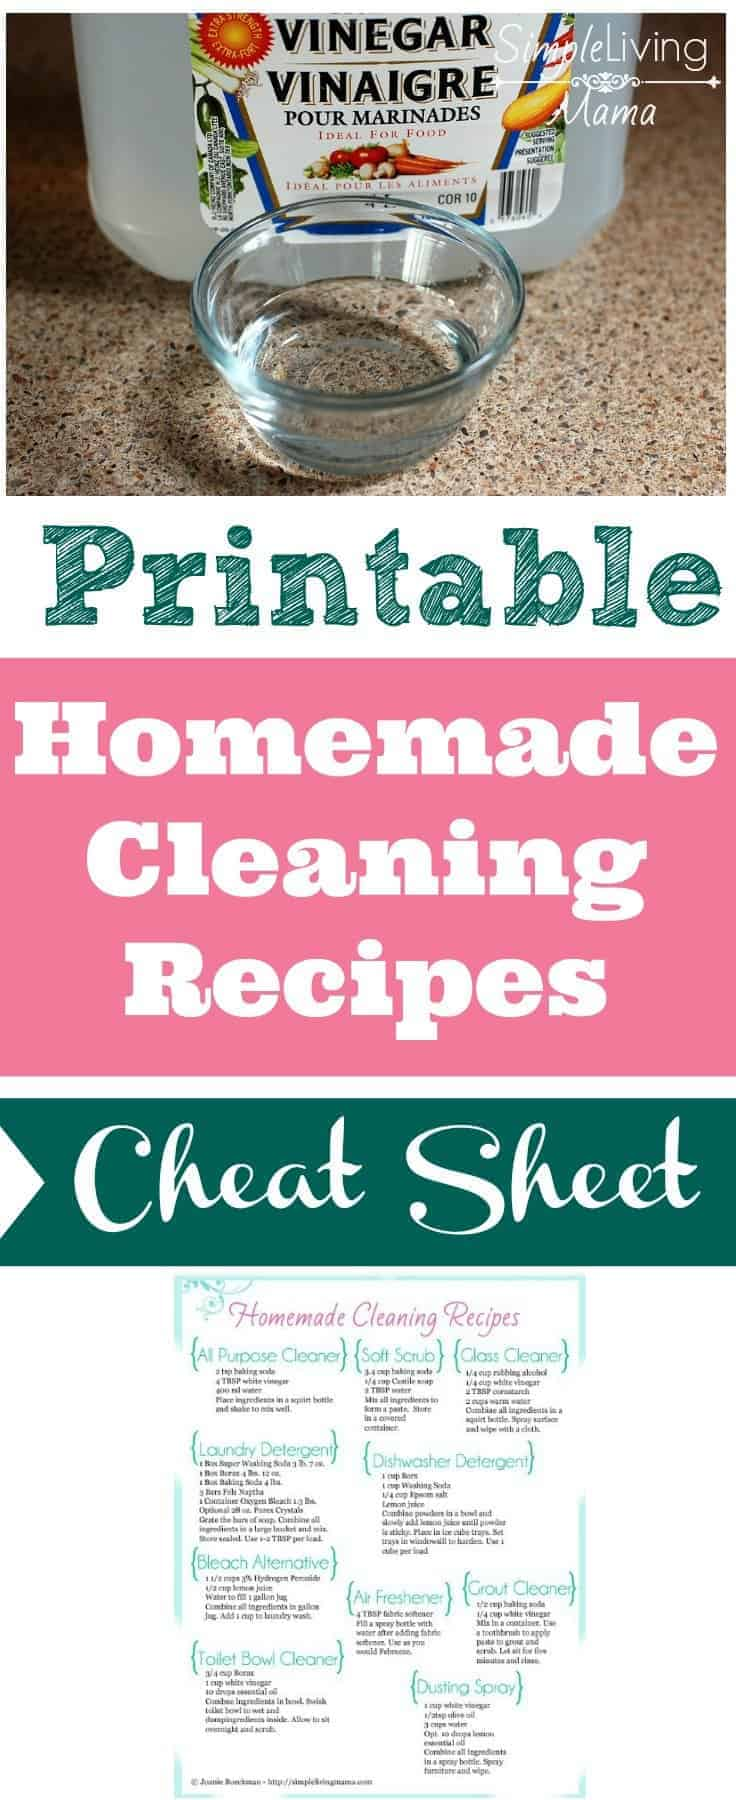 No more scouring the internet for homemade cleaning recipes. Find all of your favorite recipes on this one sheet!